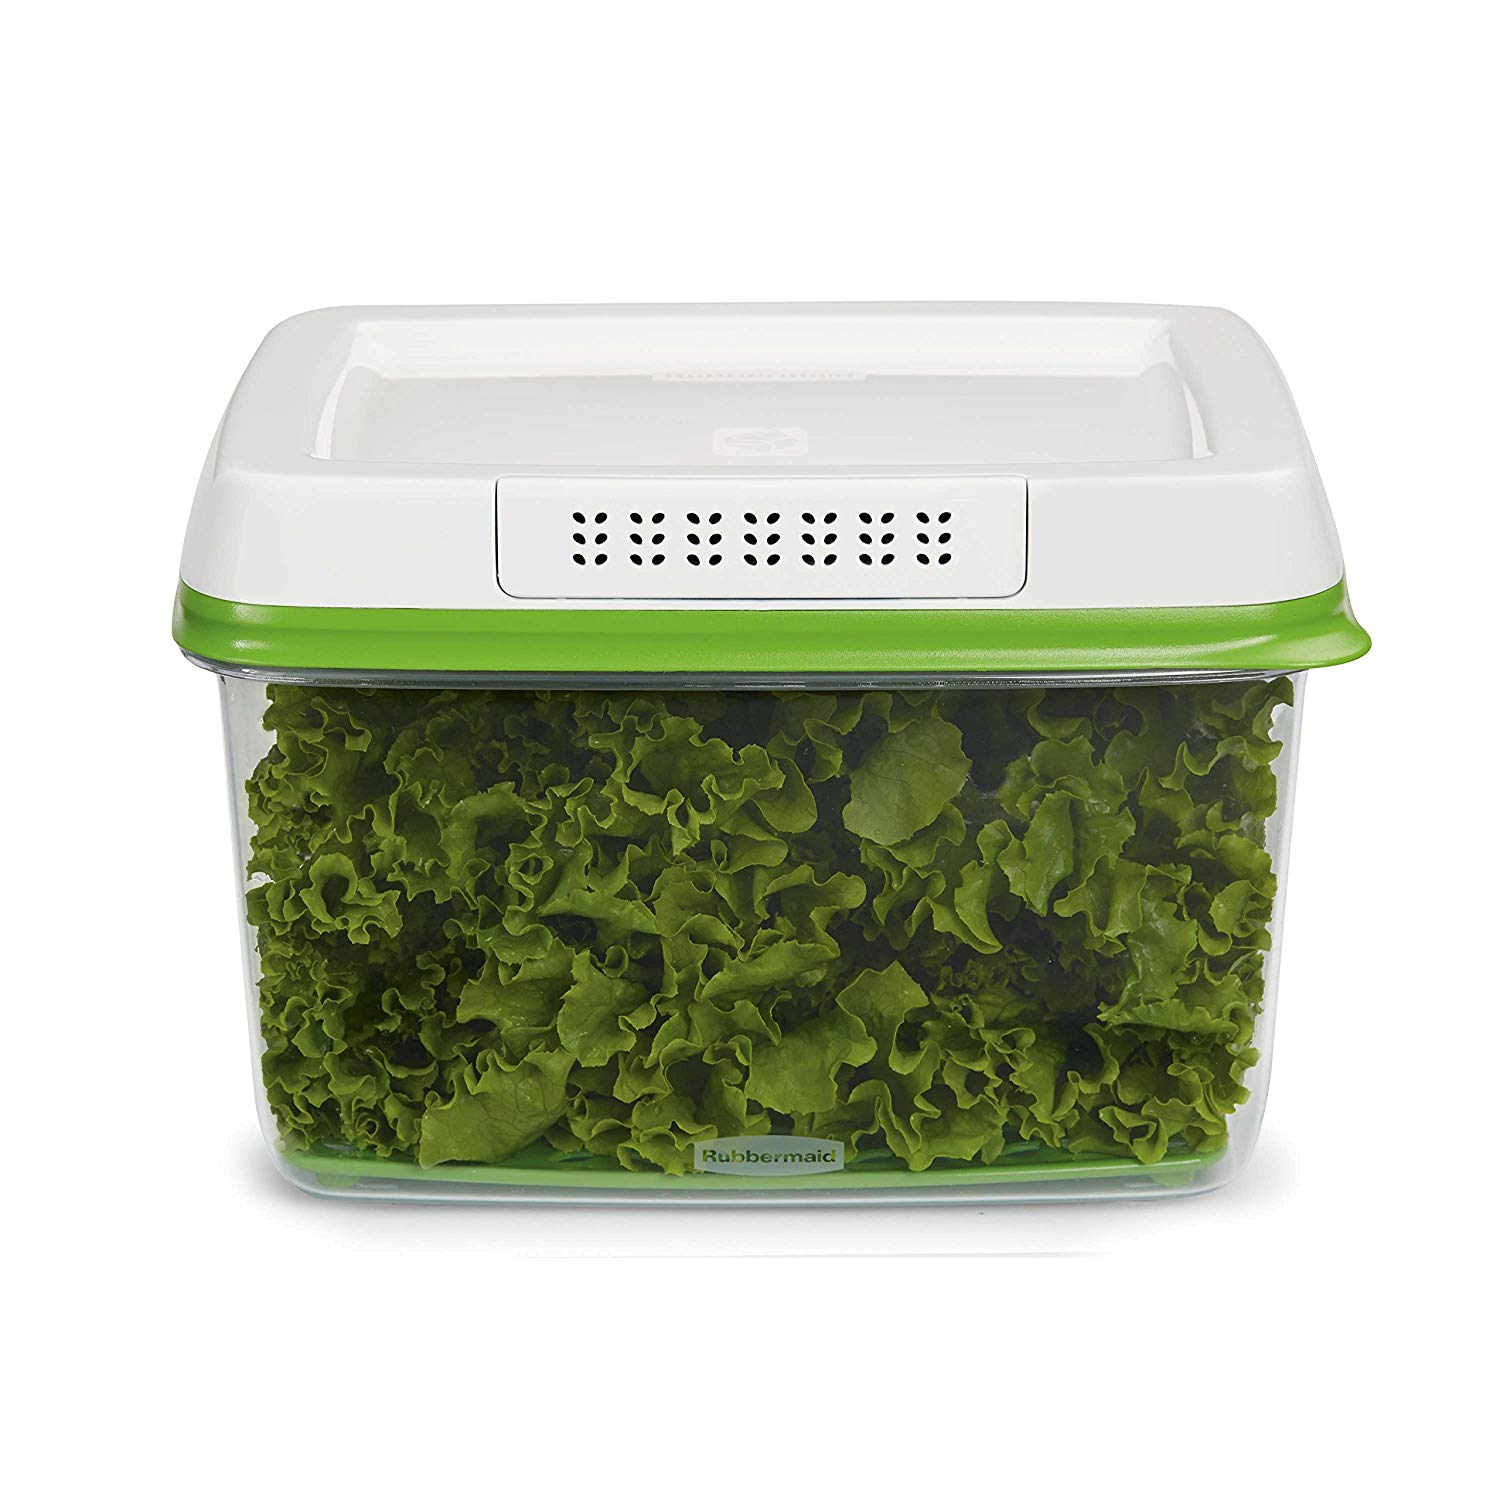 rubbermaid-freshworks-produce-saver-large-17.3-cup-container.jpg